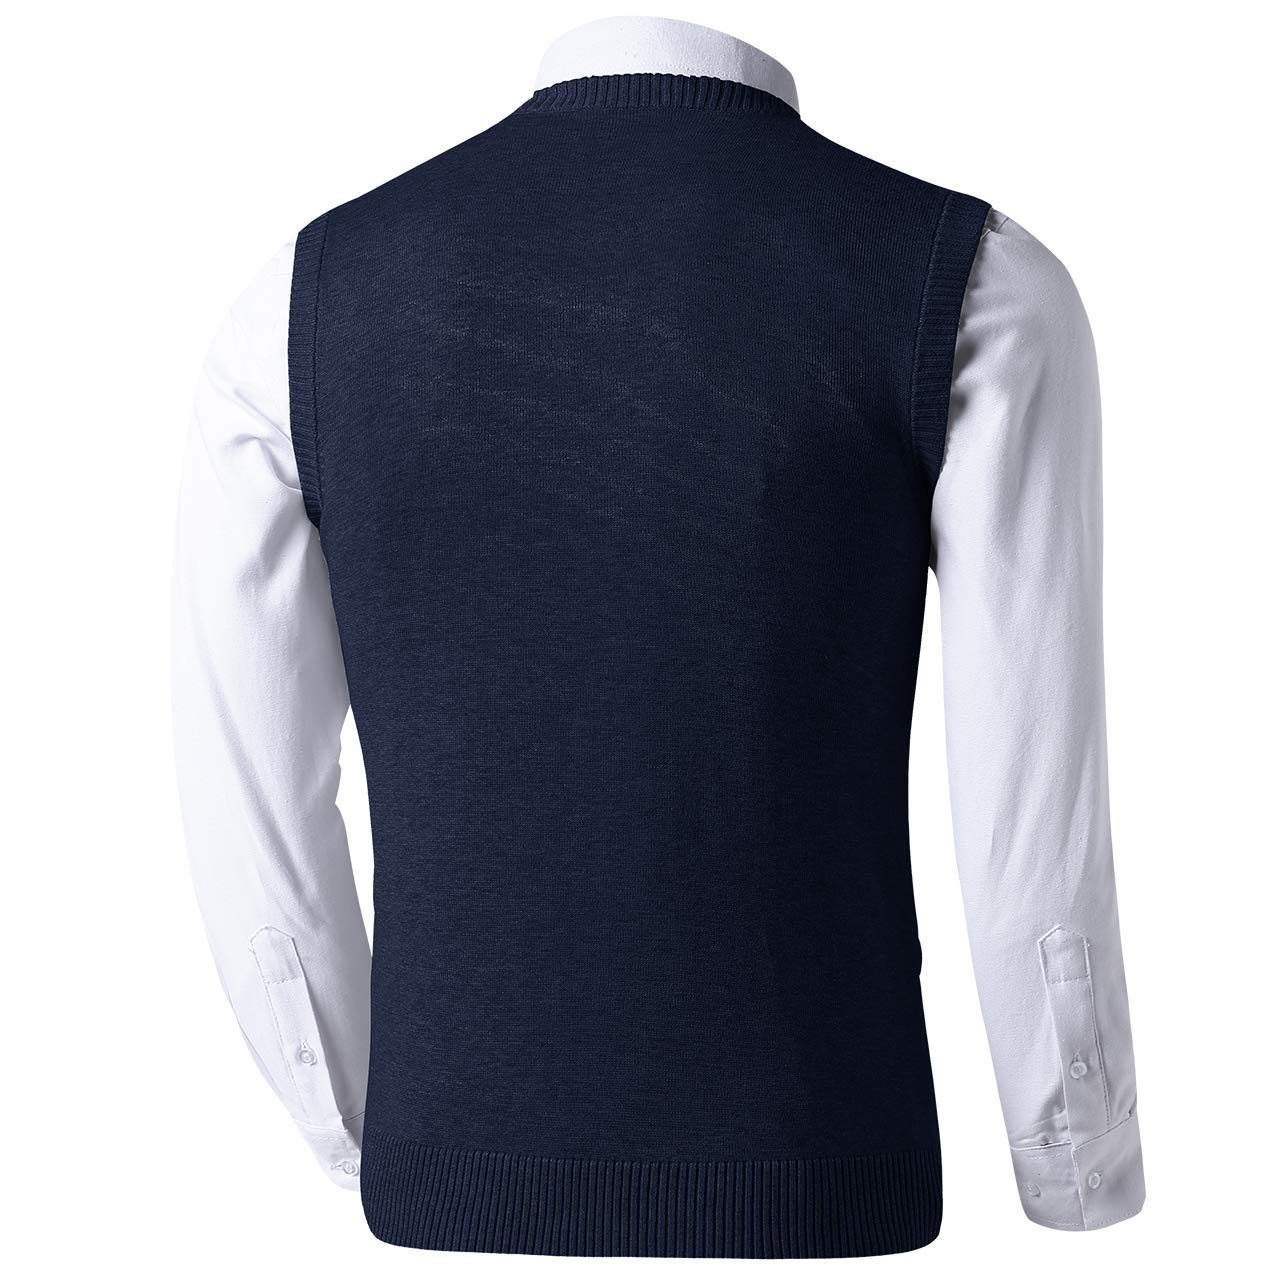 LTIFONE Mens Slim Fit V Neck Sweater Vest Basic Plain Short Sleeve Sweater Pullover Sleeveless Sweaters with Ribbing Edge 1617 NEW1